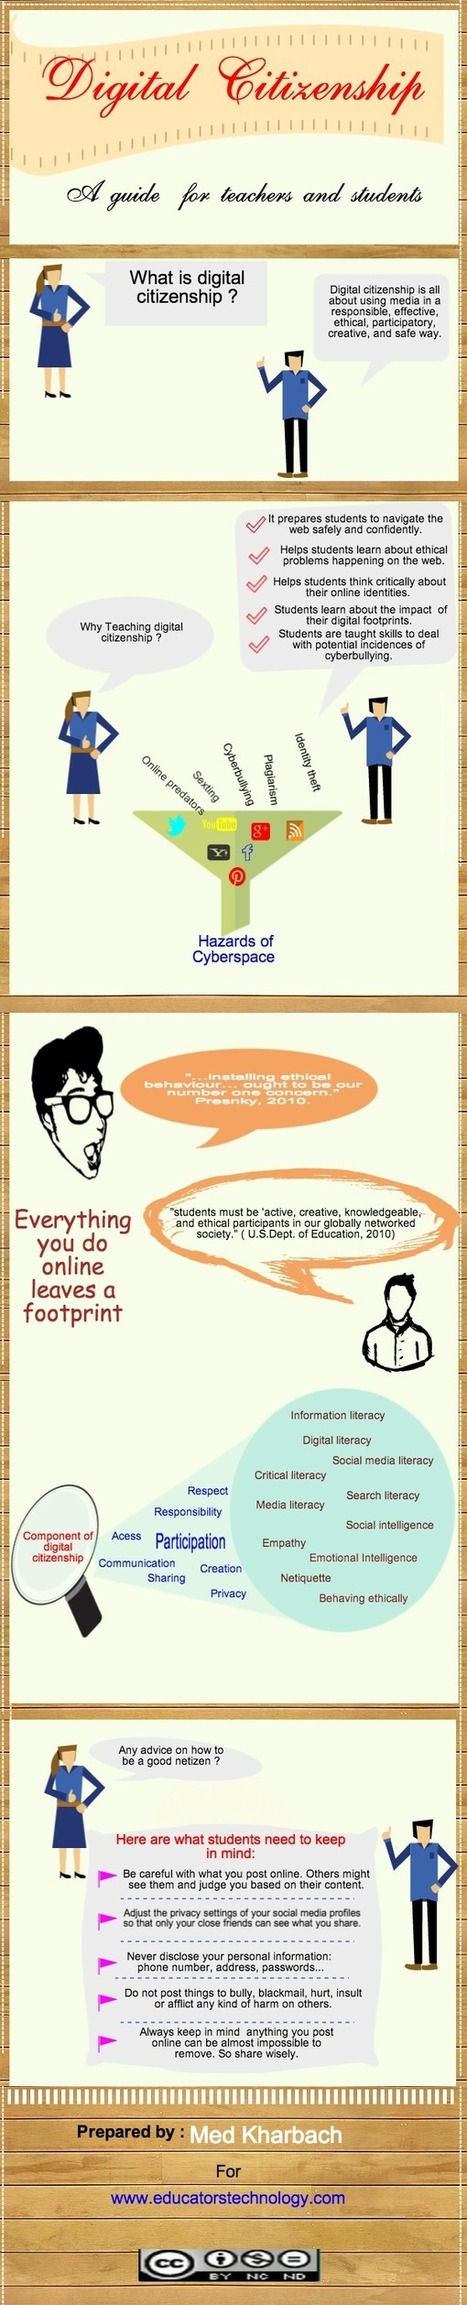 Digital Citizenship Explained for Teachers ~ Educational Technology and Mobile Learning | Wiki_Universe | Scoop.it